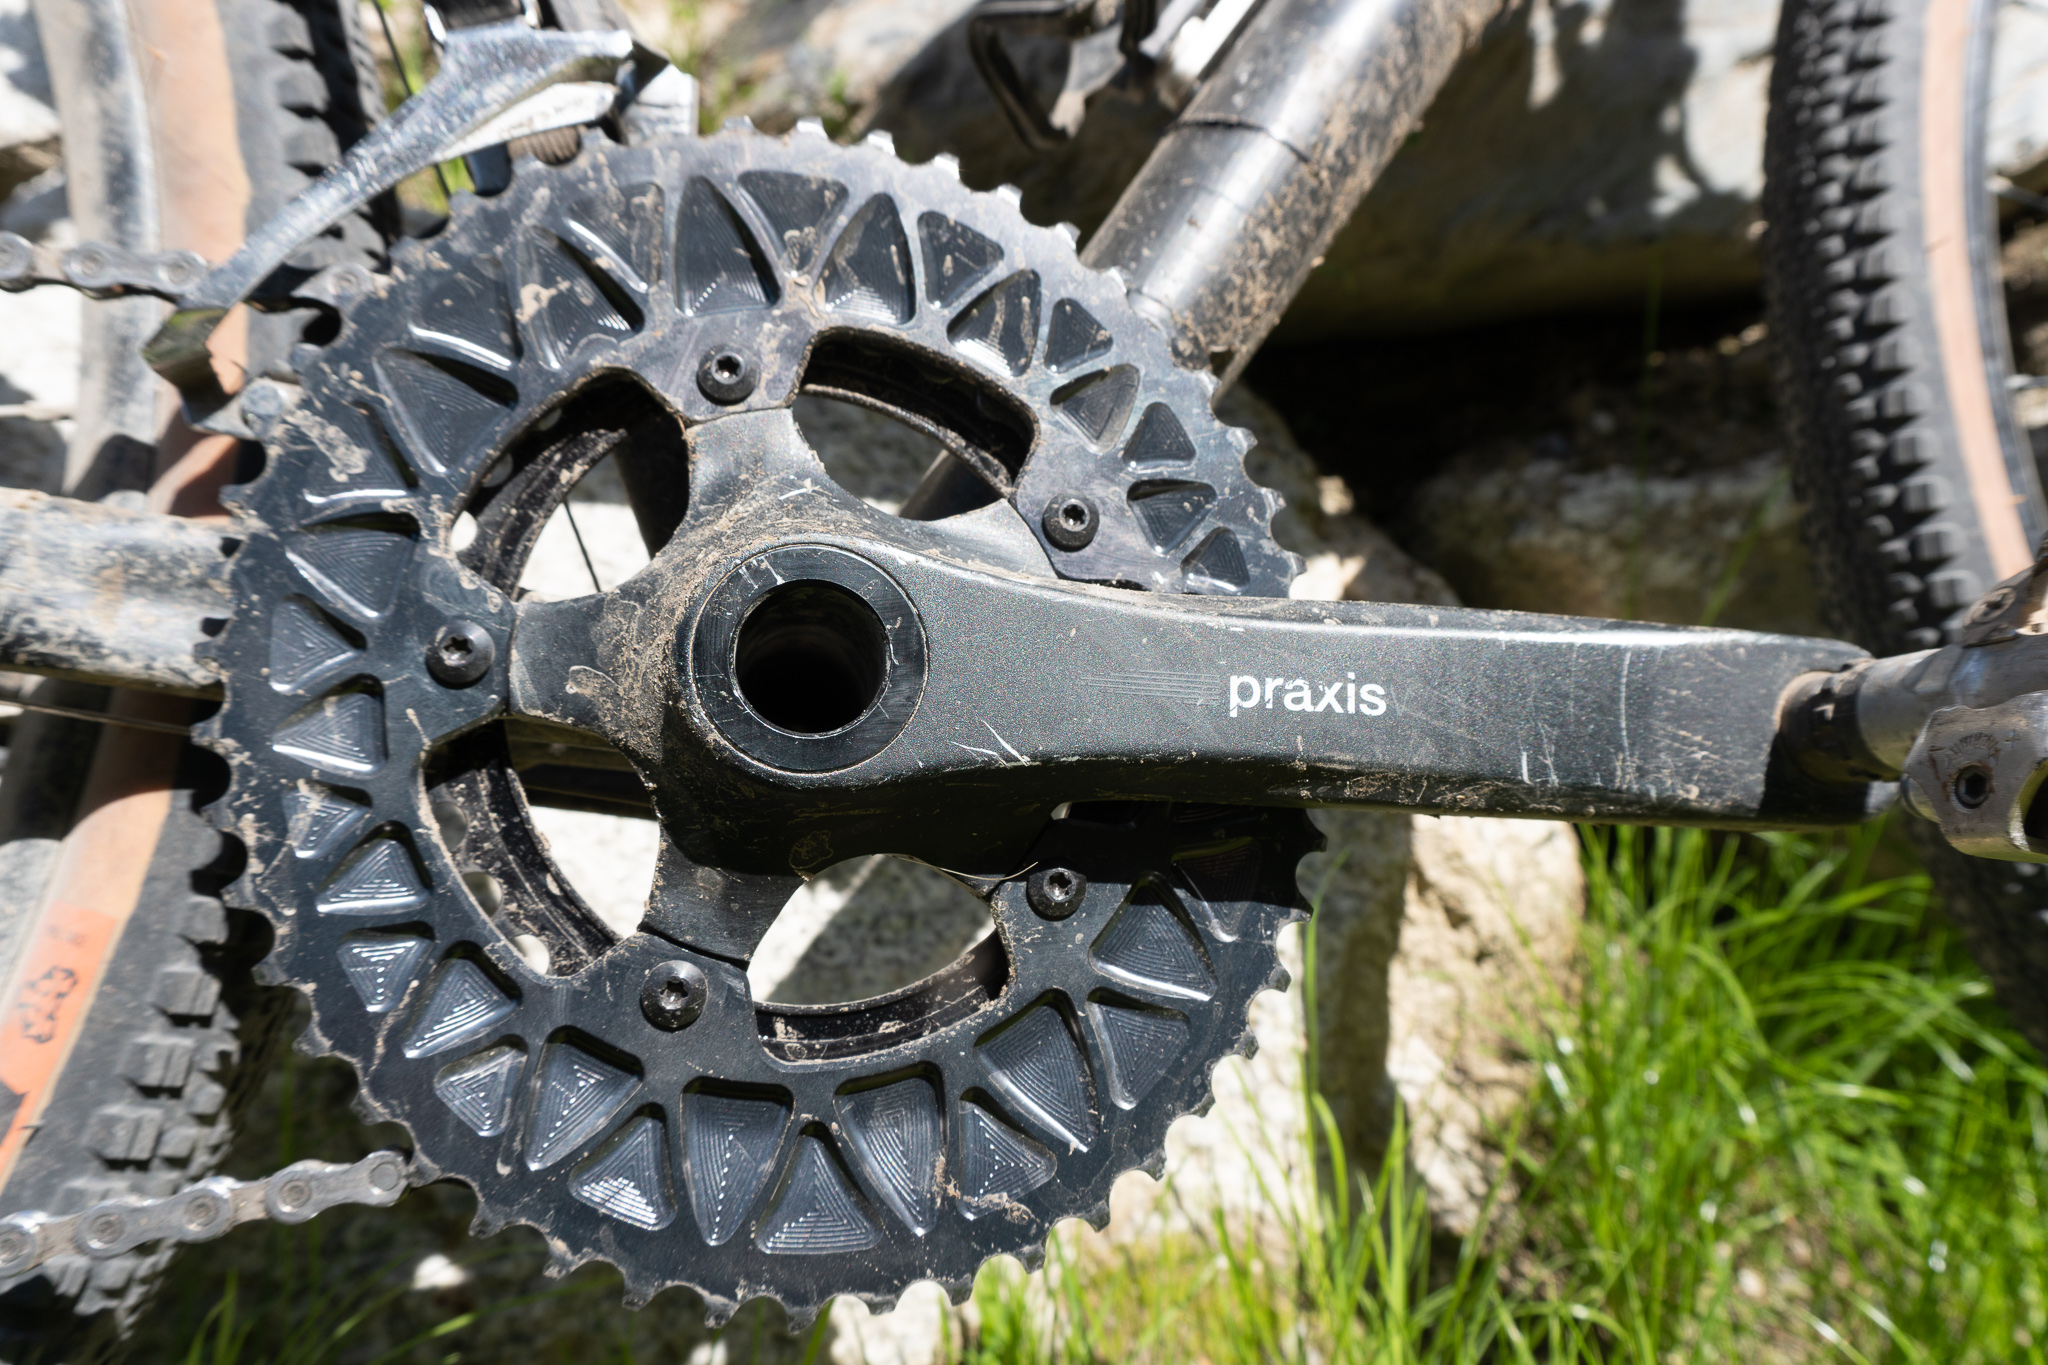 Absolute Black chain rings on Praxis cranks